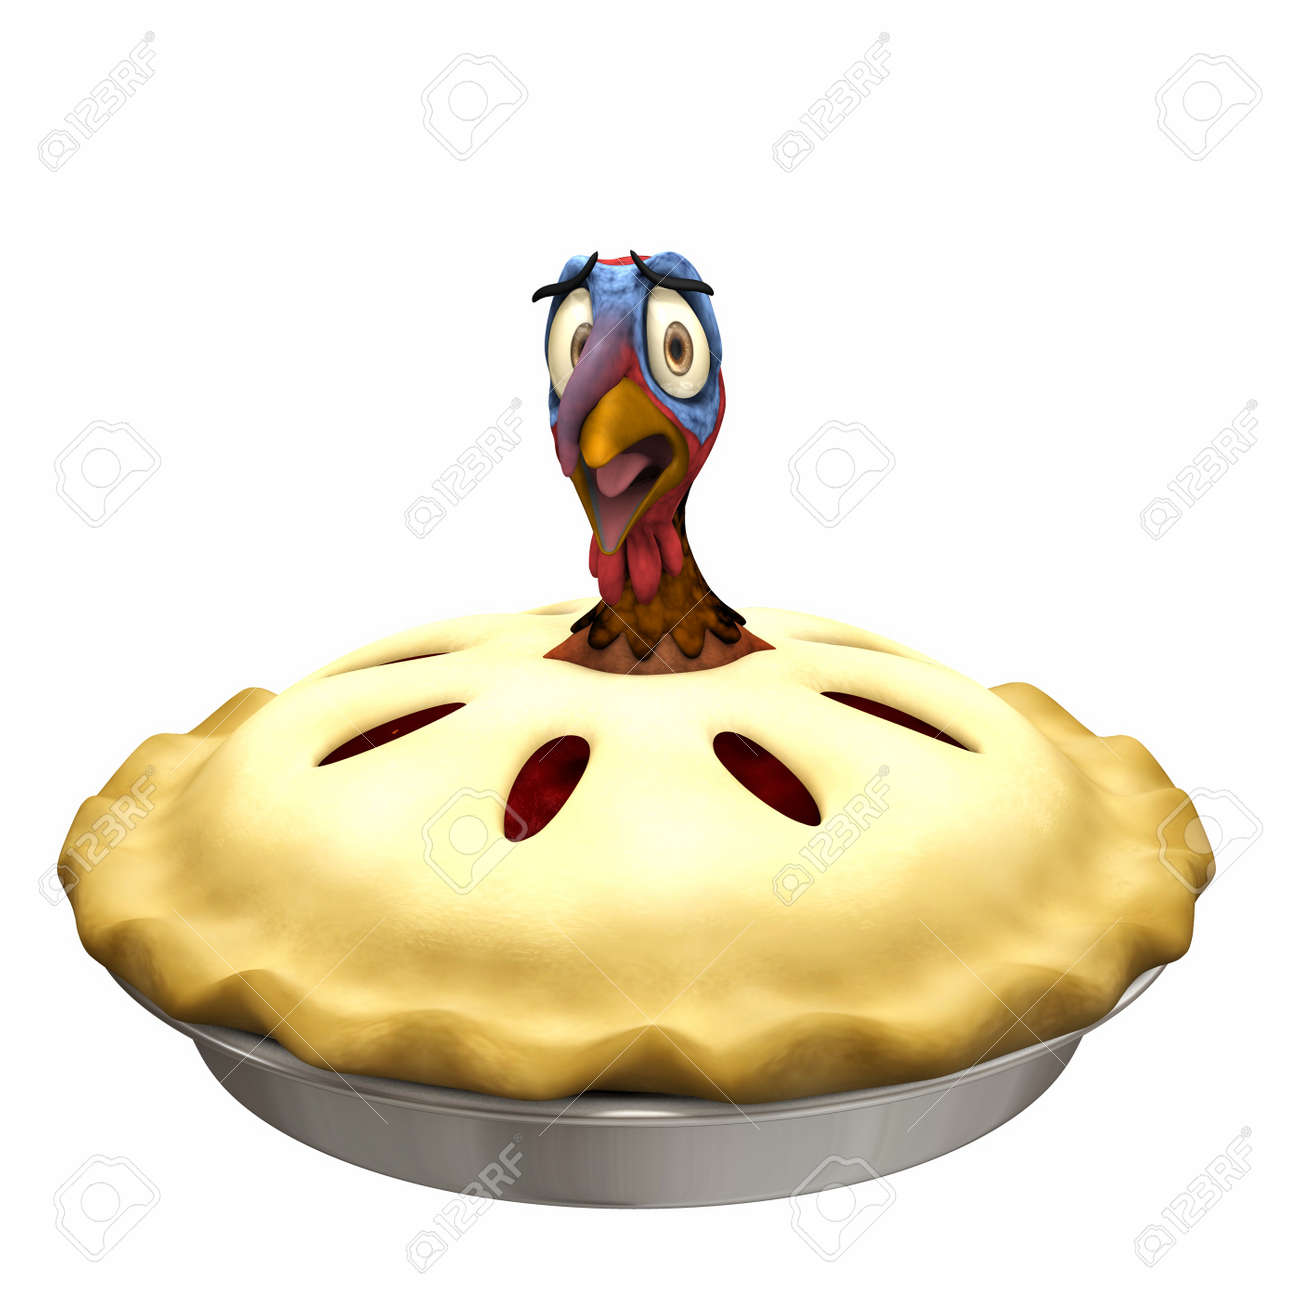 Image result for chicken pot pie clipart